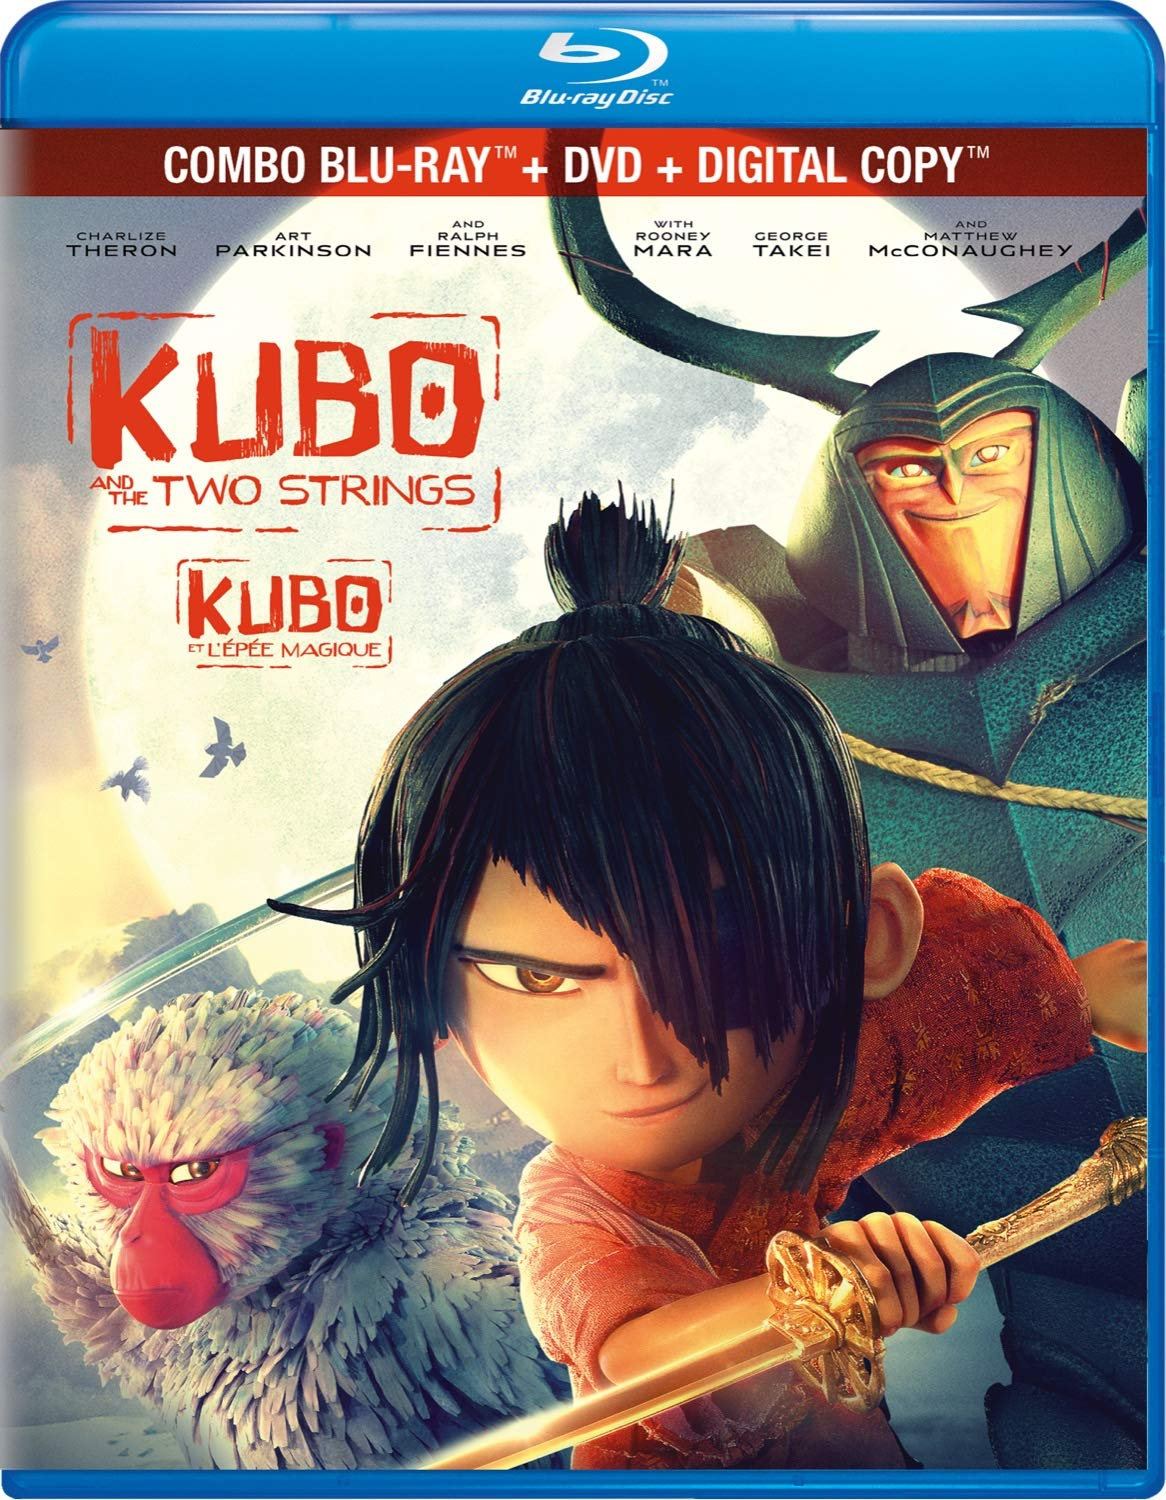 Amazon Com Kubo And The Two Strings Blu Ray Dvd Art Parkinson Charlize Theron Ralph Fiennes Brenda Vaccaro Cary Hiroyuki Tagawa Travis Knight Movies Tv